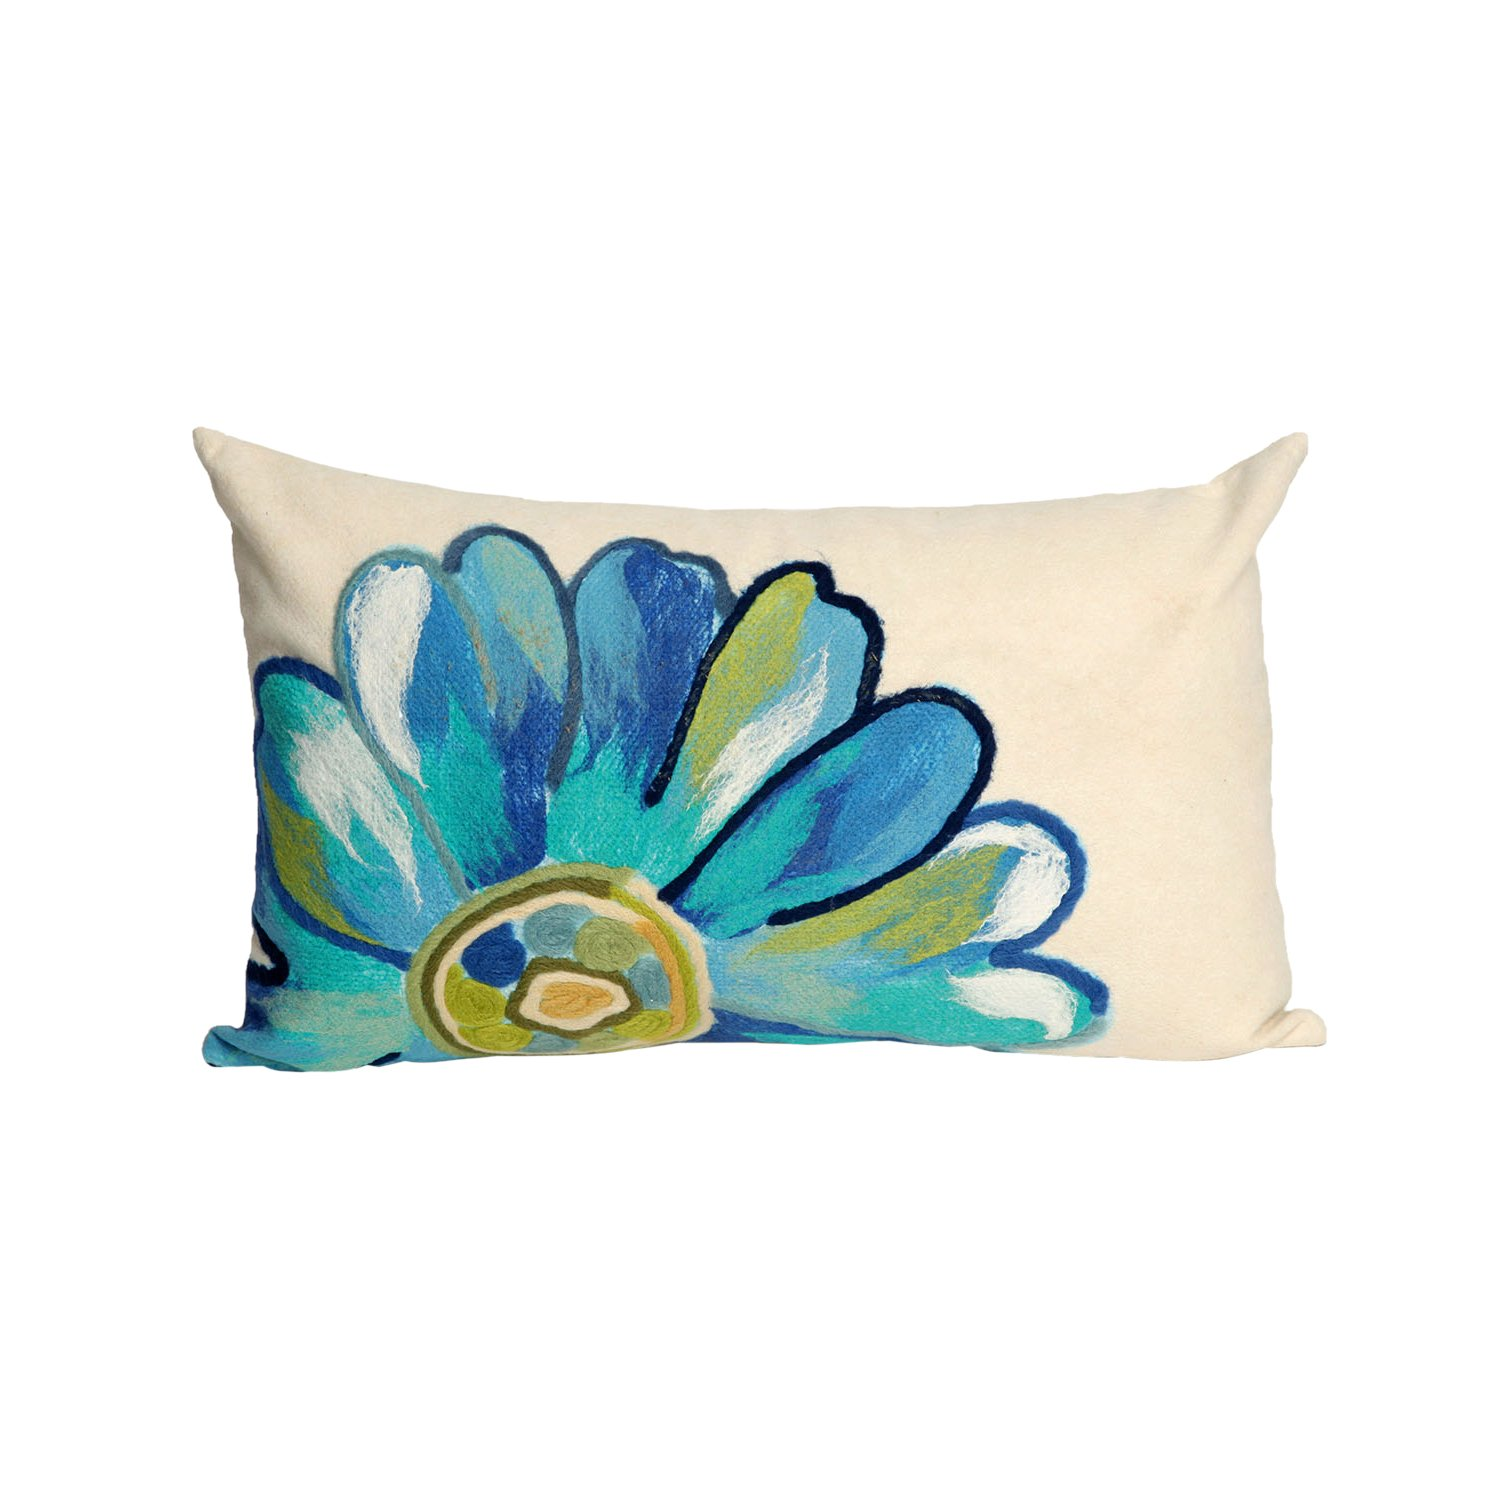 Liora Manne 7S01SA36804 Mystic III Flower Power Aqua Indoor/Outdoor Pillow